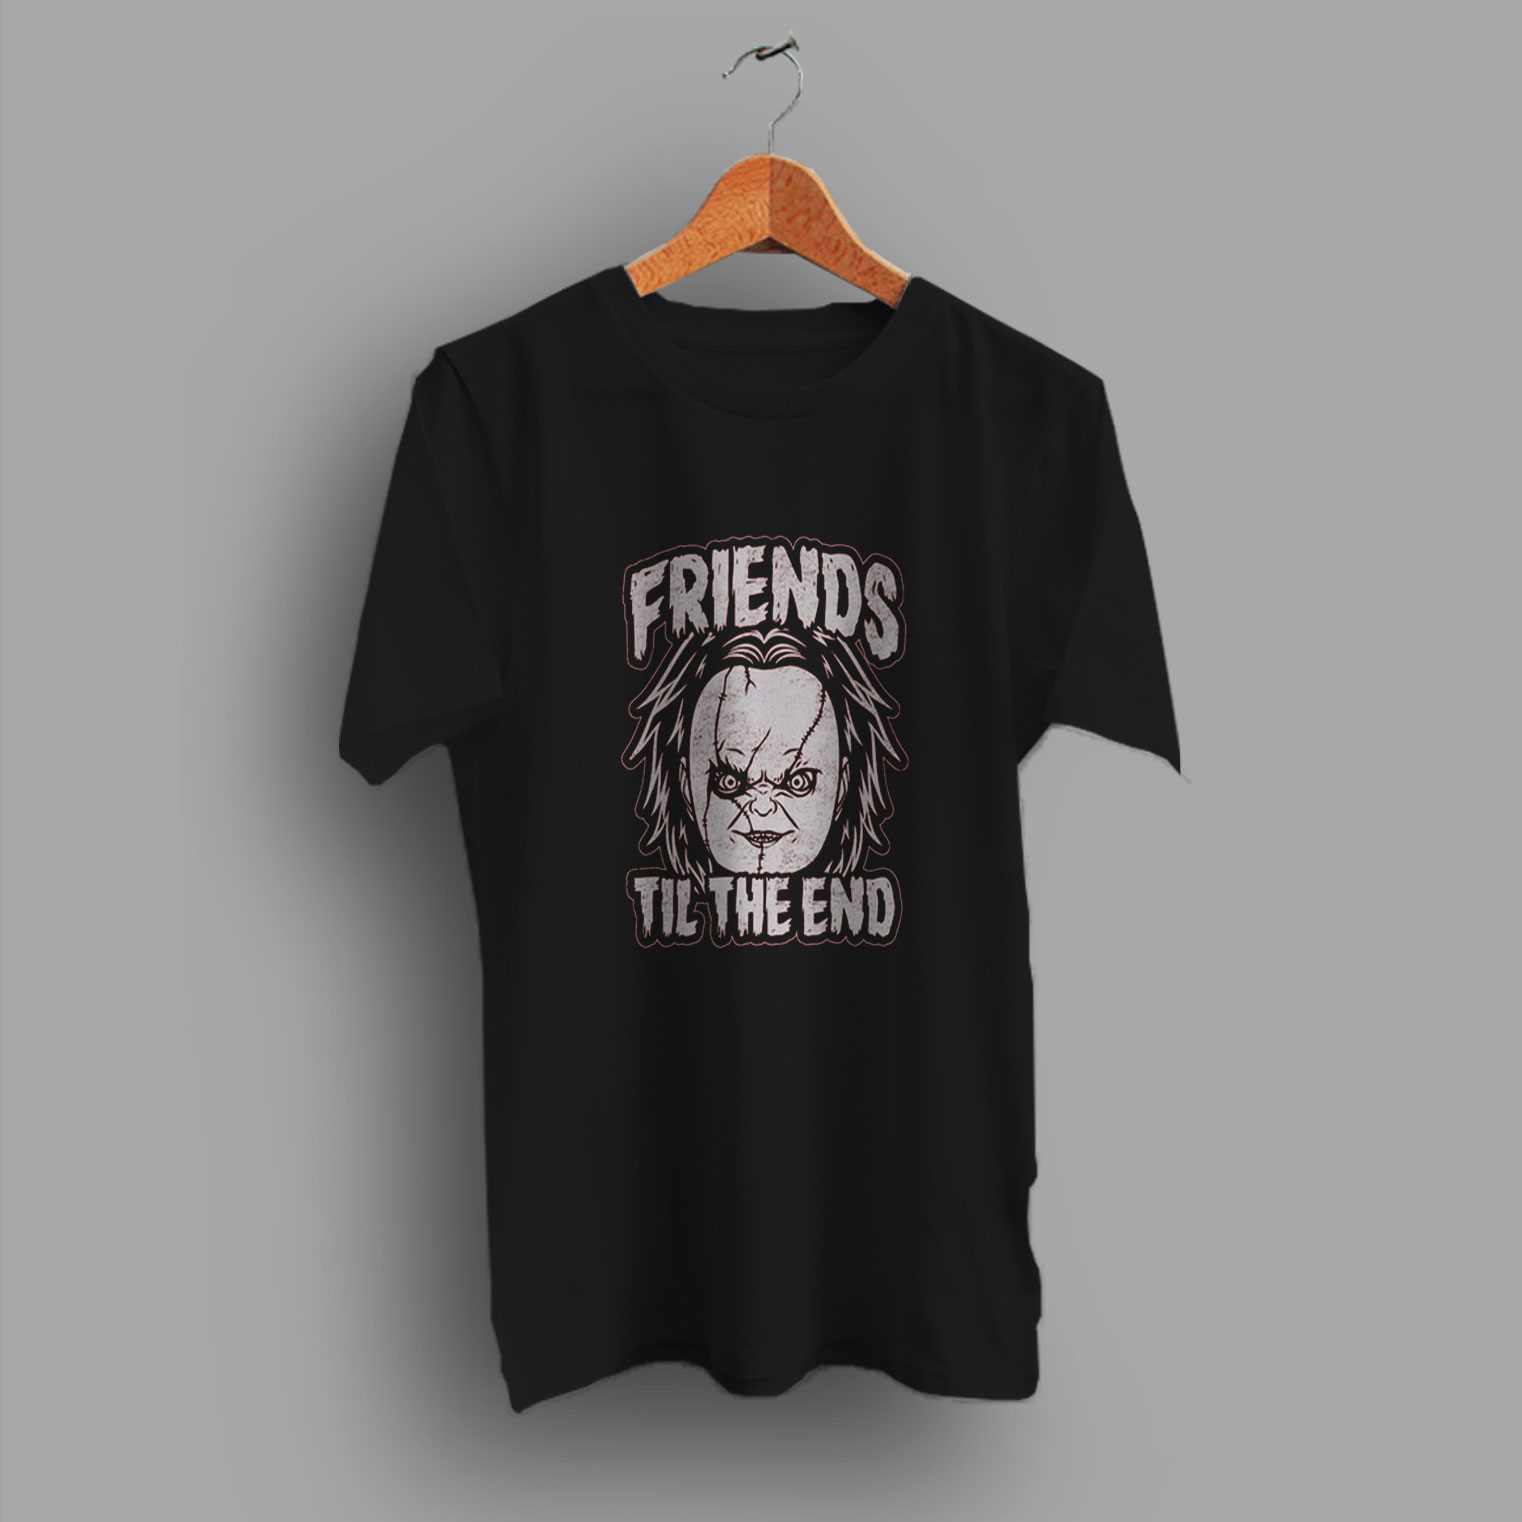 Halloween Friends Shirt.Chucky Friends Til The End Halloween T Shirt